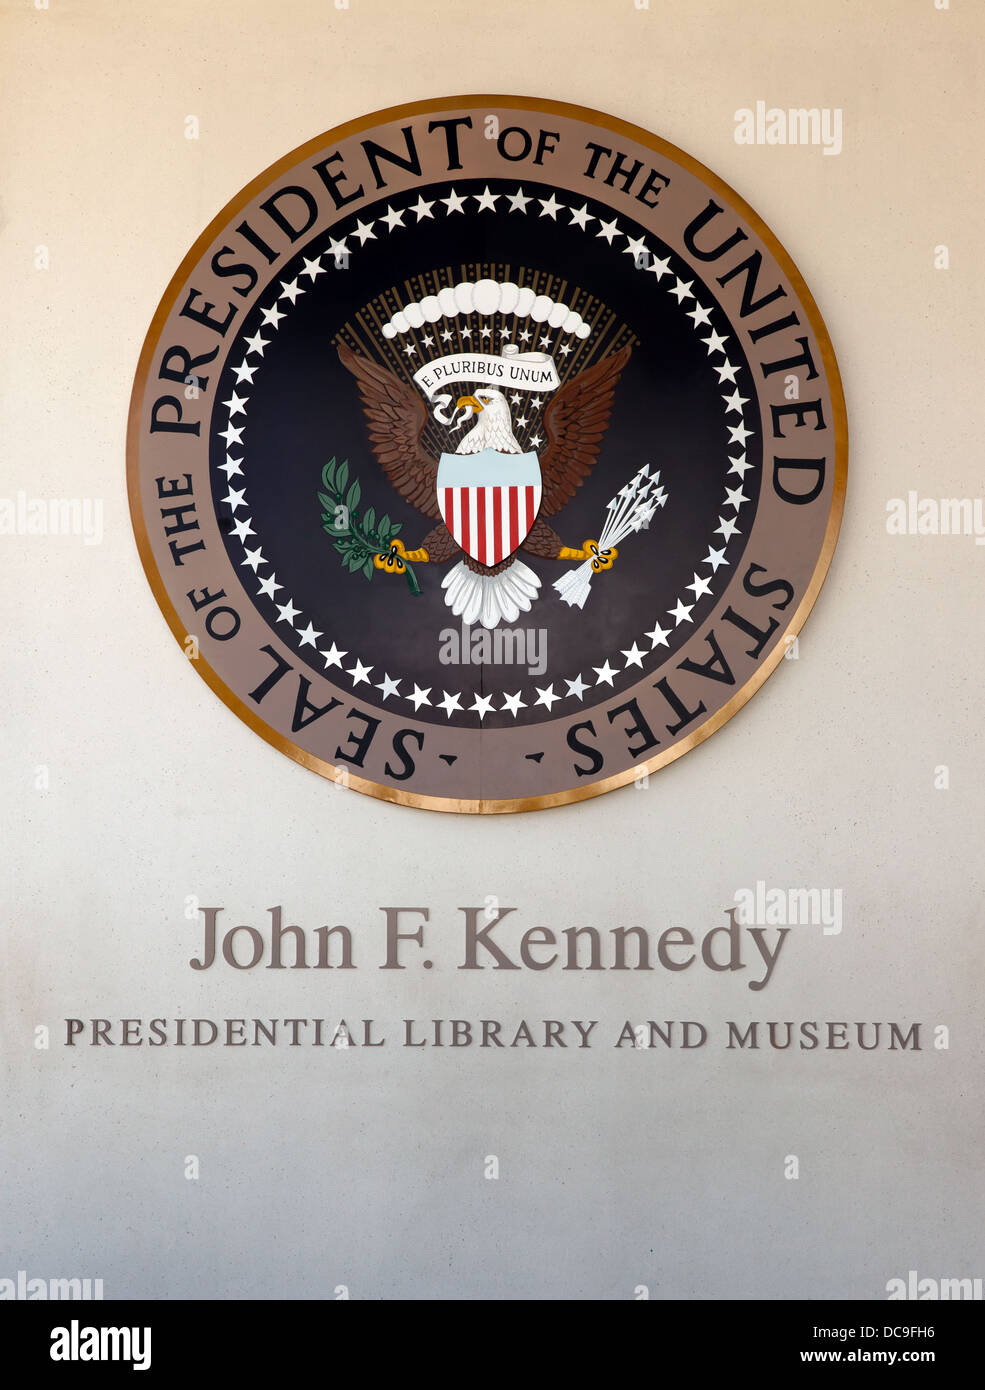 Image of the Seal of the President of the United States, inside the John F. Kennedy Presidential Library and Museum. Stock Photo